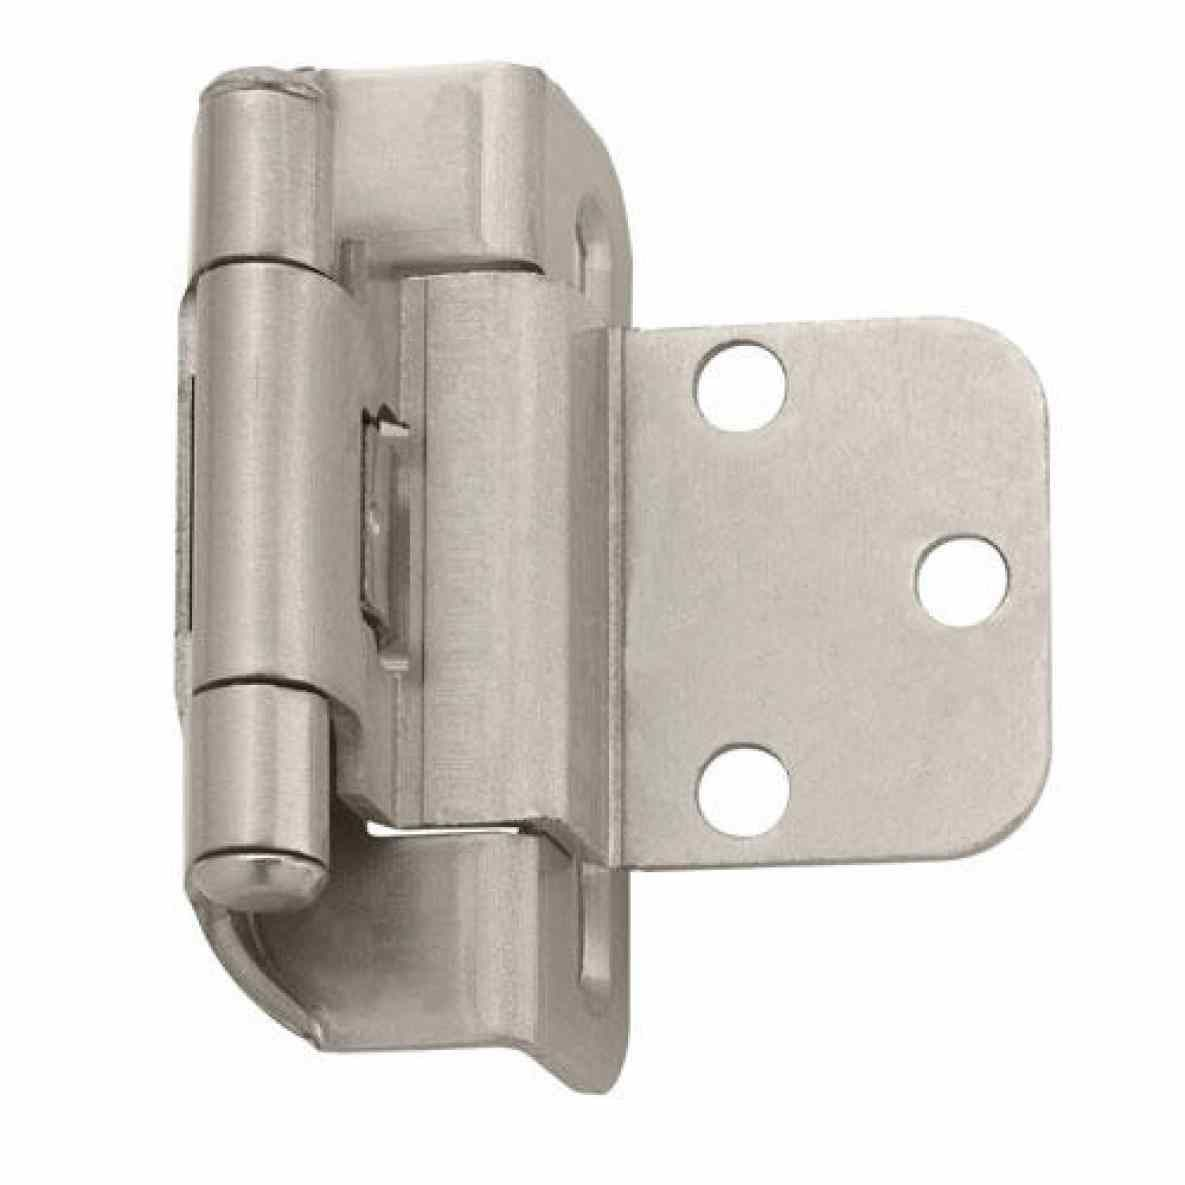 Decoration How Inset Cabinet Door Hinges To Fix Cabinet Doors Creative Cabinets Decoration Adjusting Door Hinges And D Inset Hinges Amerock Hinges For Cabinets